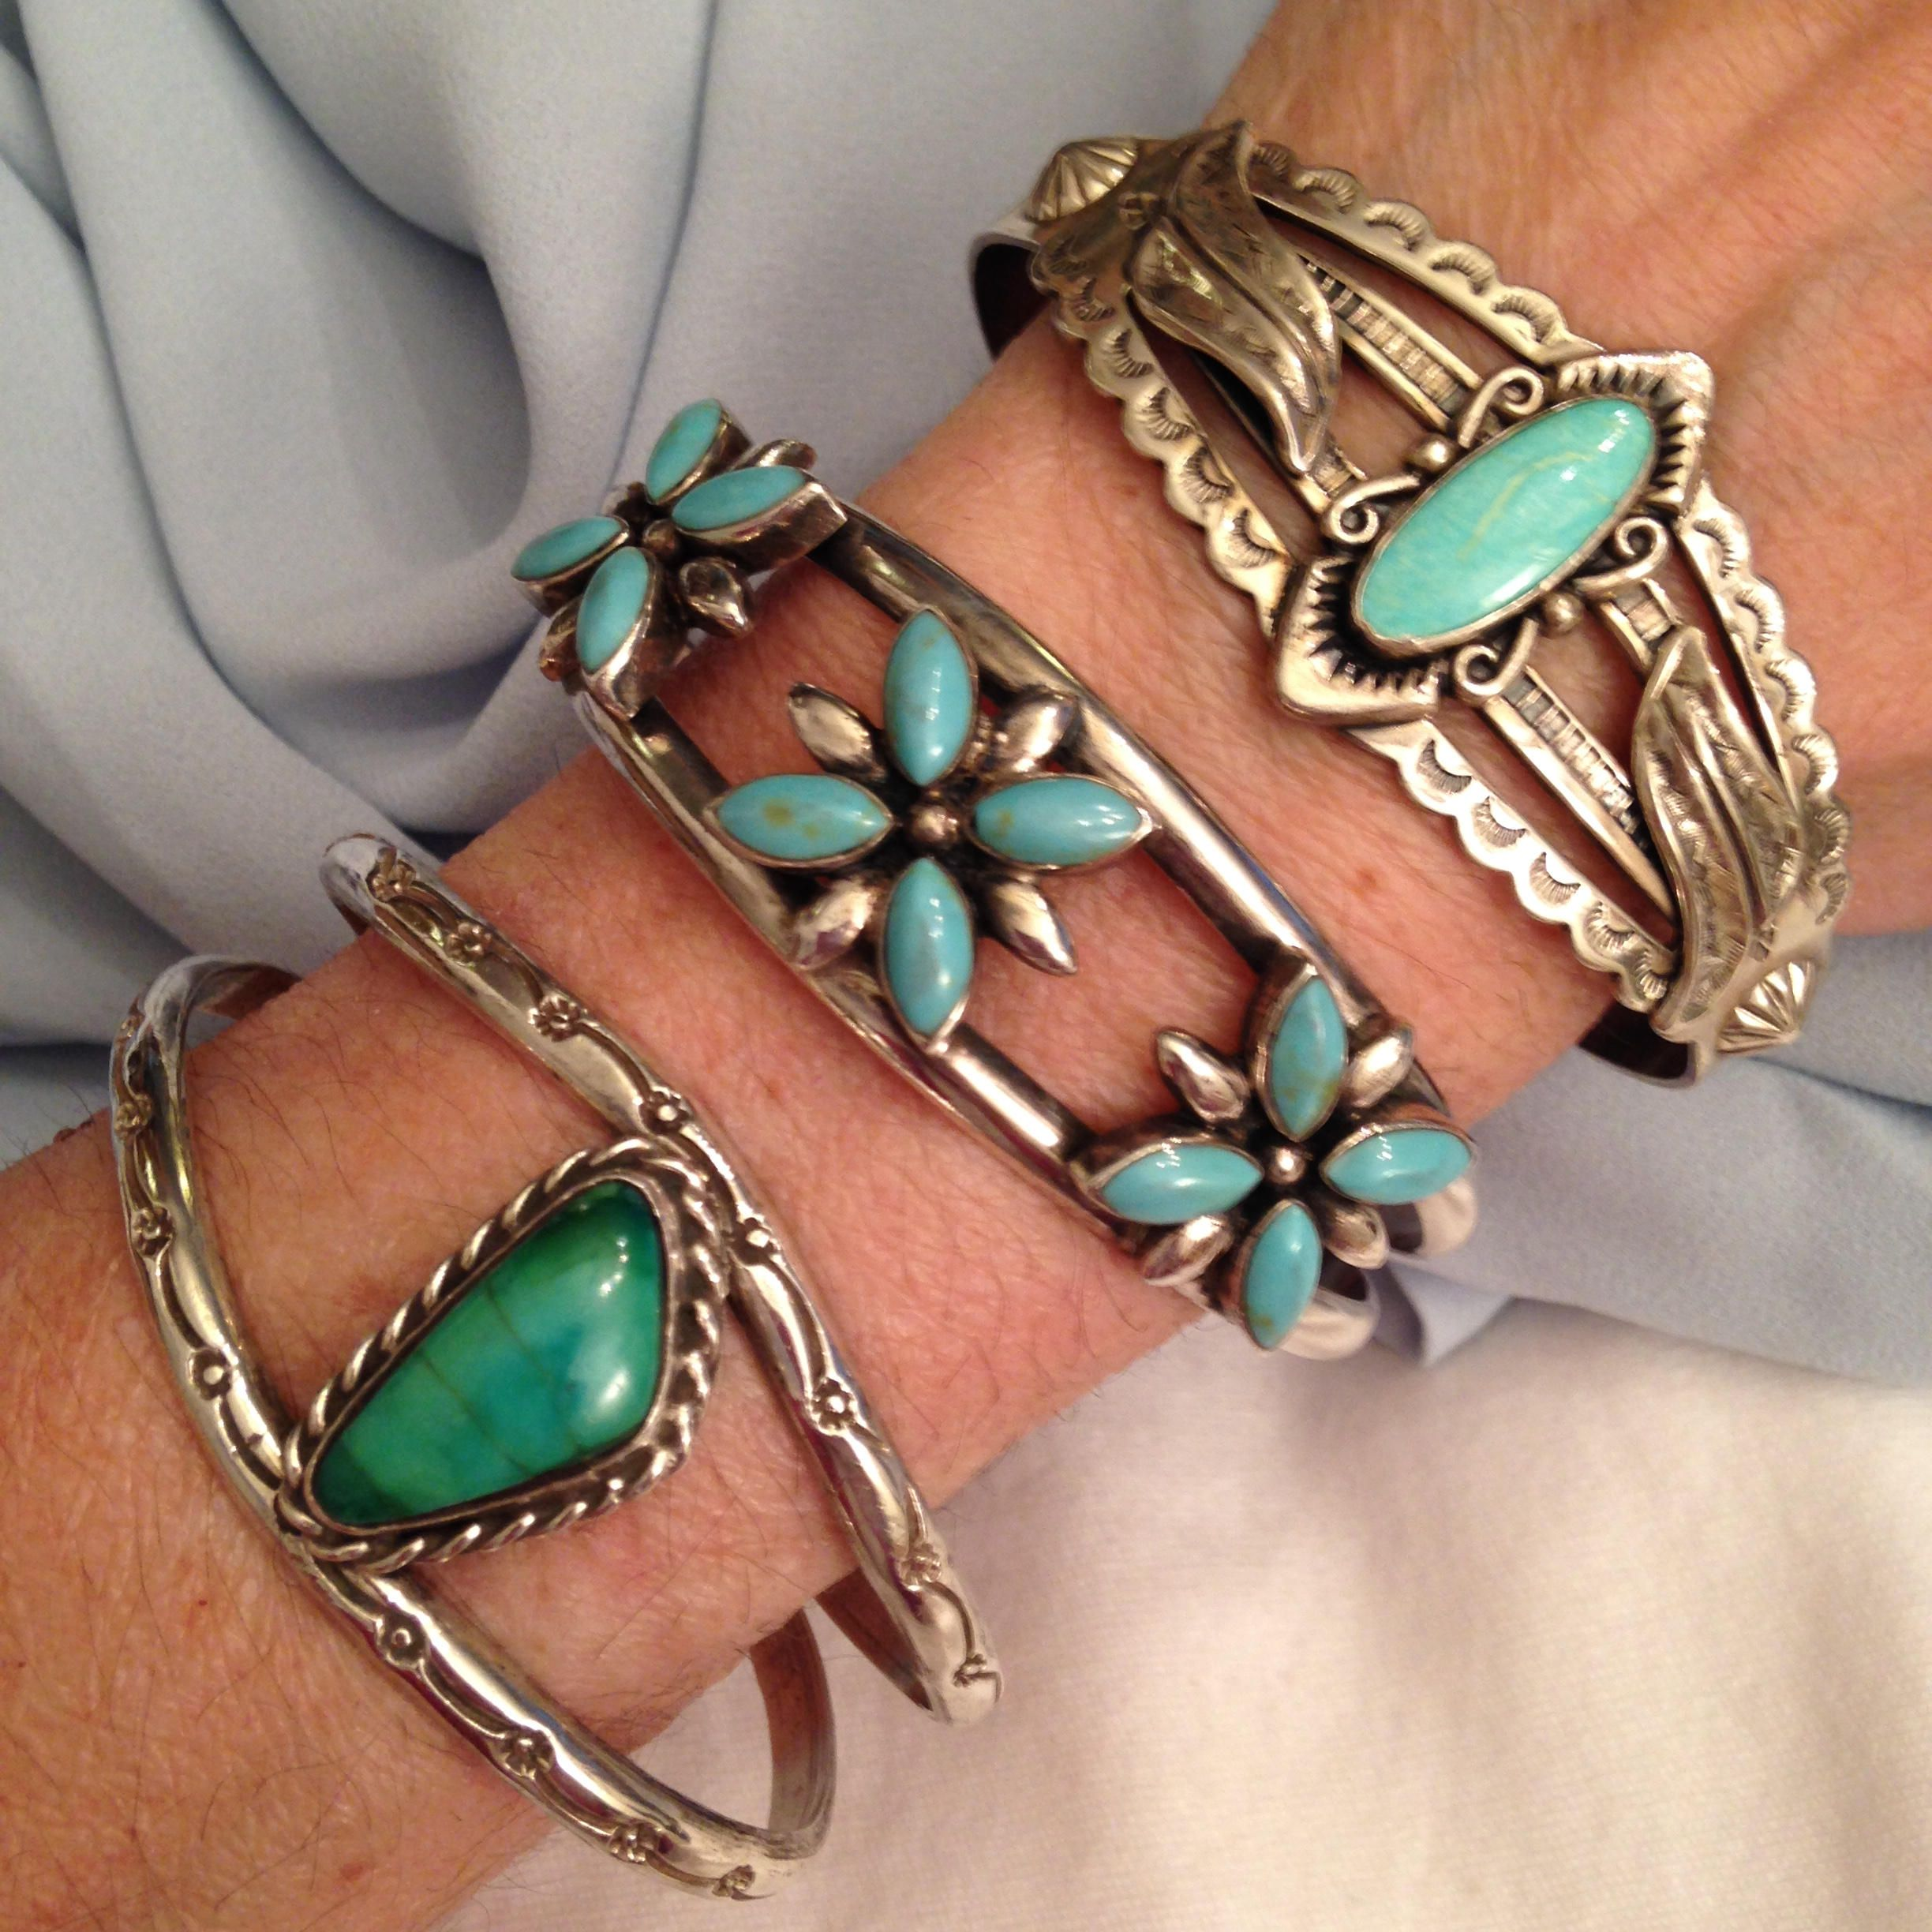 Wide turquoise navajo cuff double soldered silver bangle bands hand wide turquoise navajo cuff double soldered silver bangle bands hand stamped sun flowers native american symbols vintage southwest boho cuff buycottarizona Images